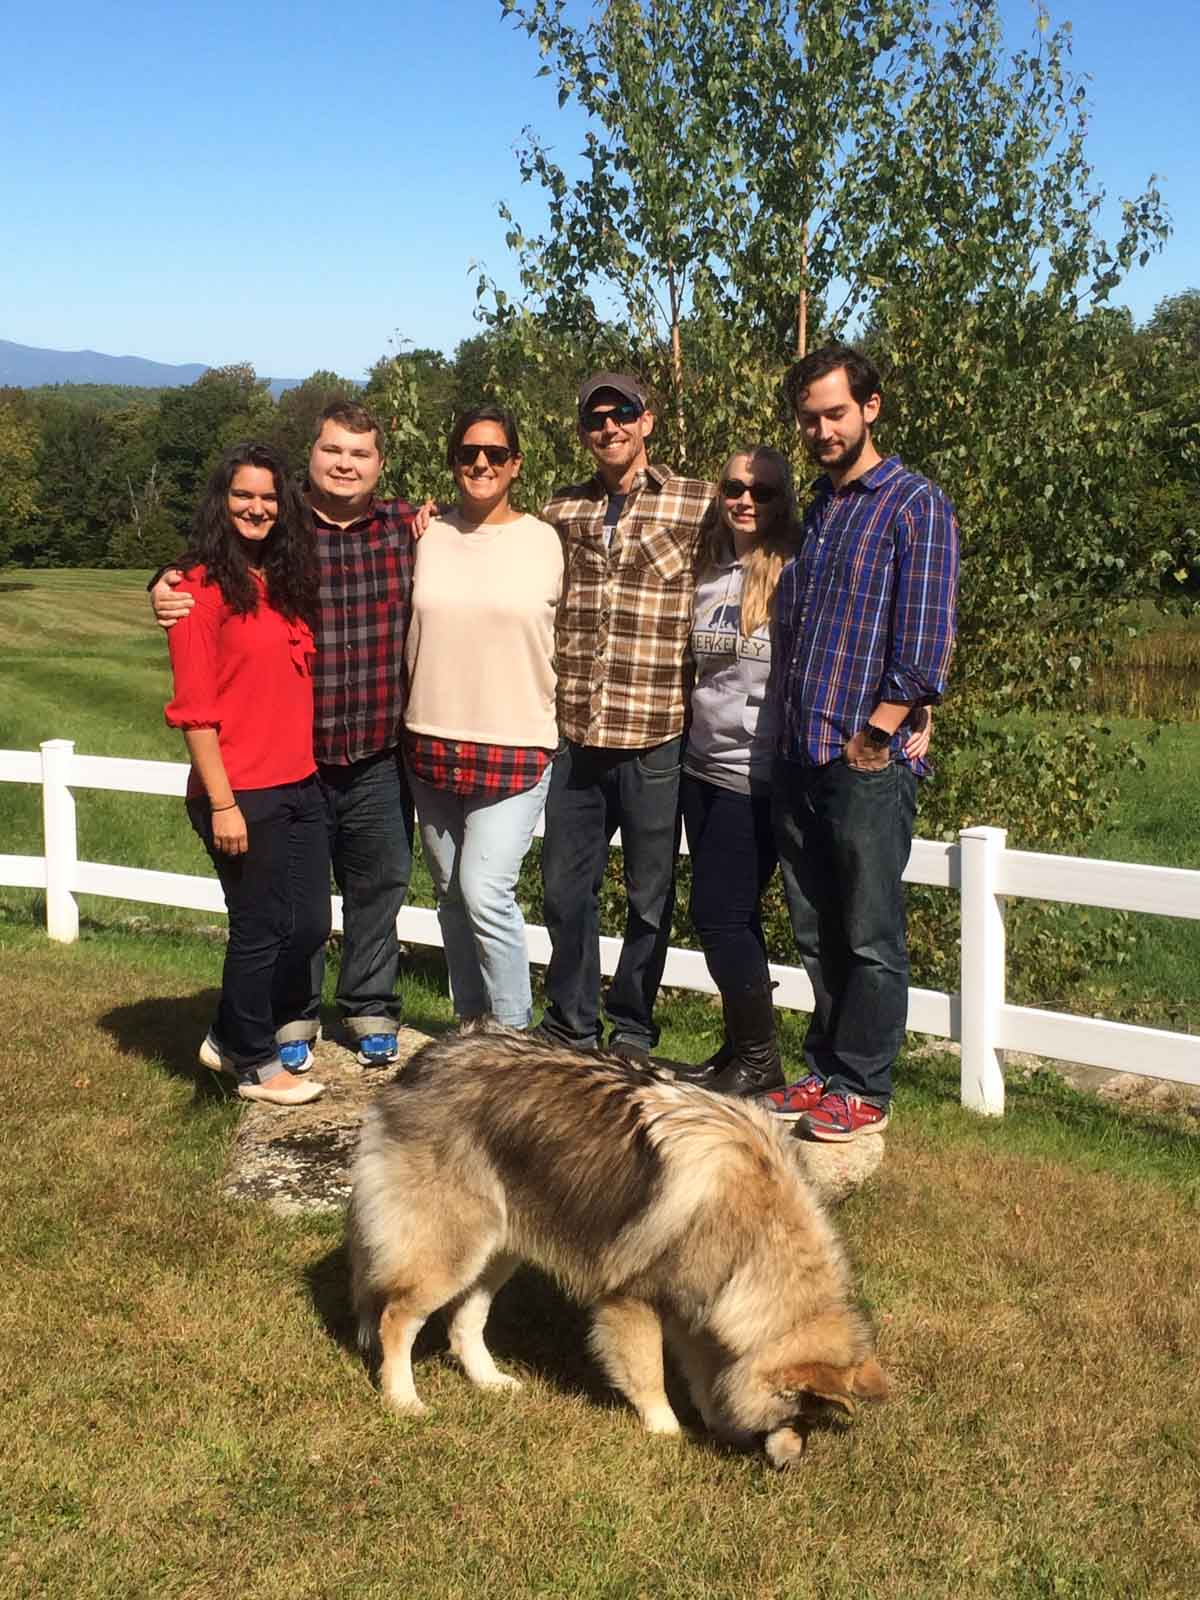 New Hampshire Apple Picking with friends